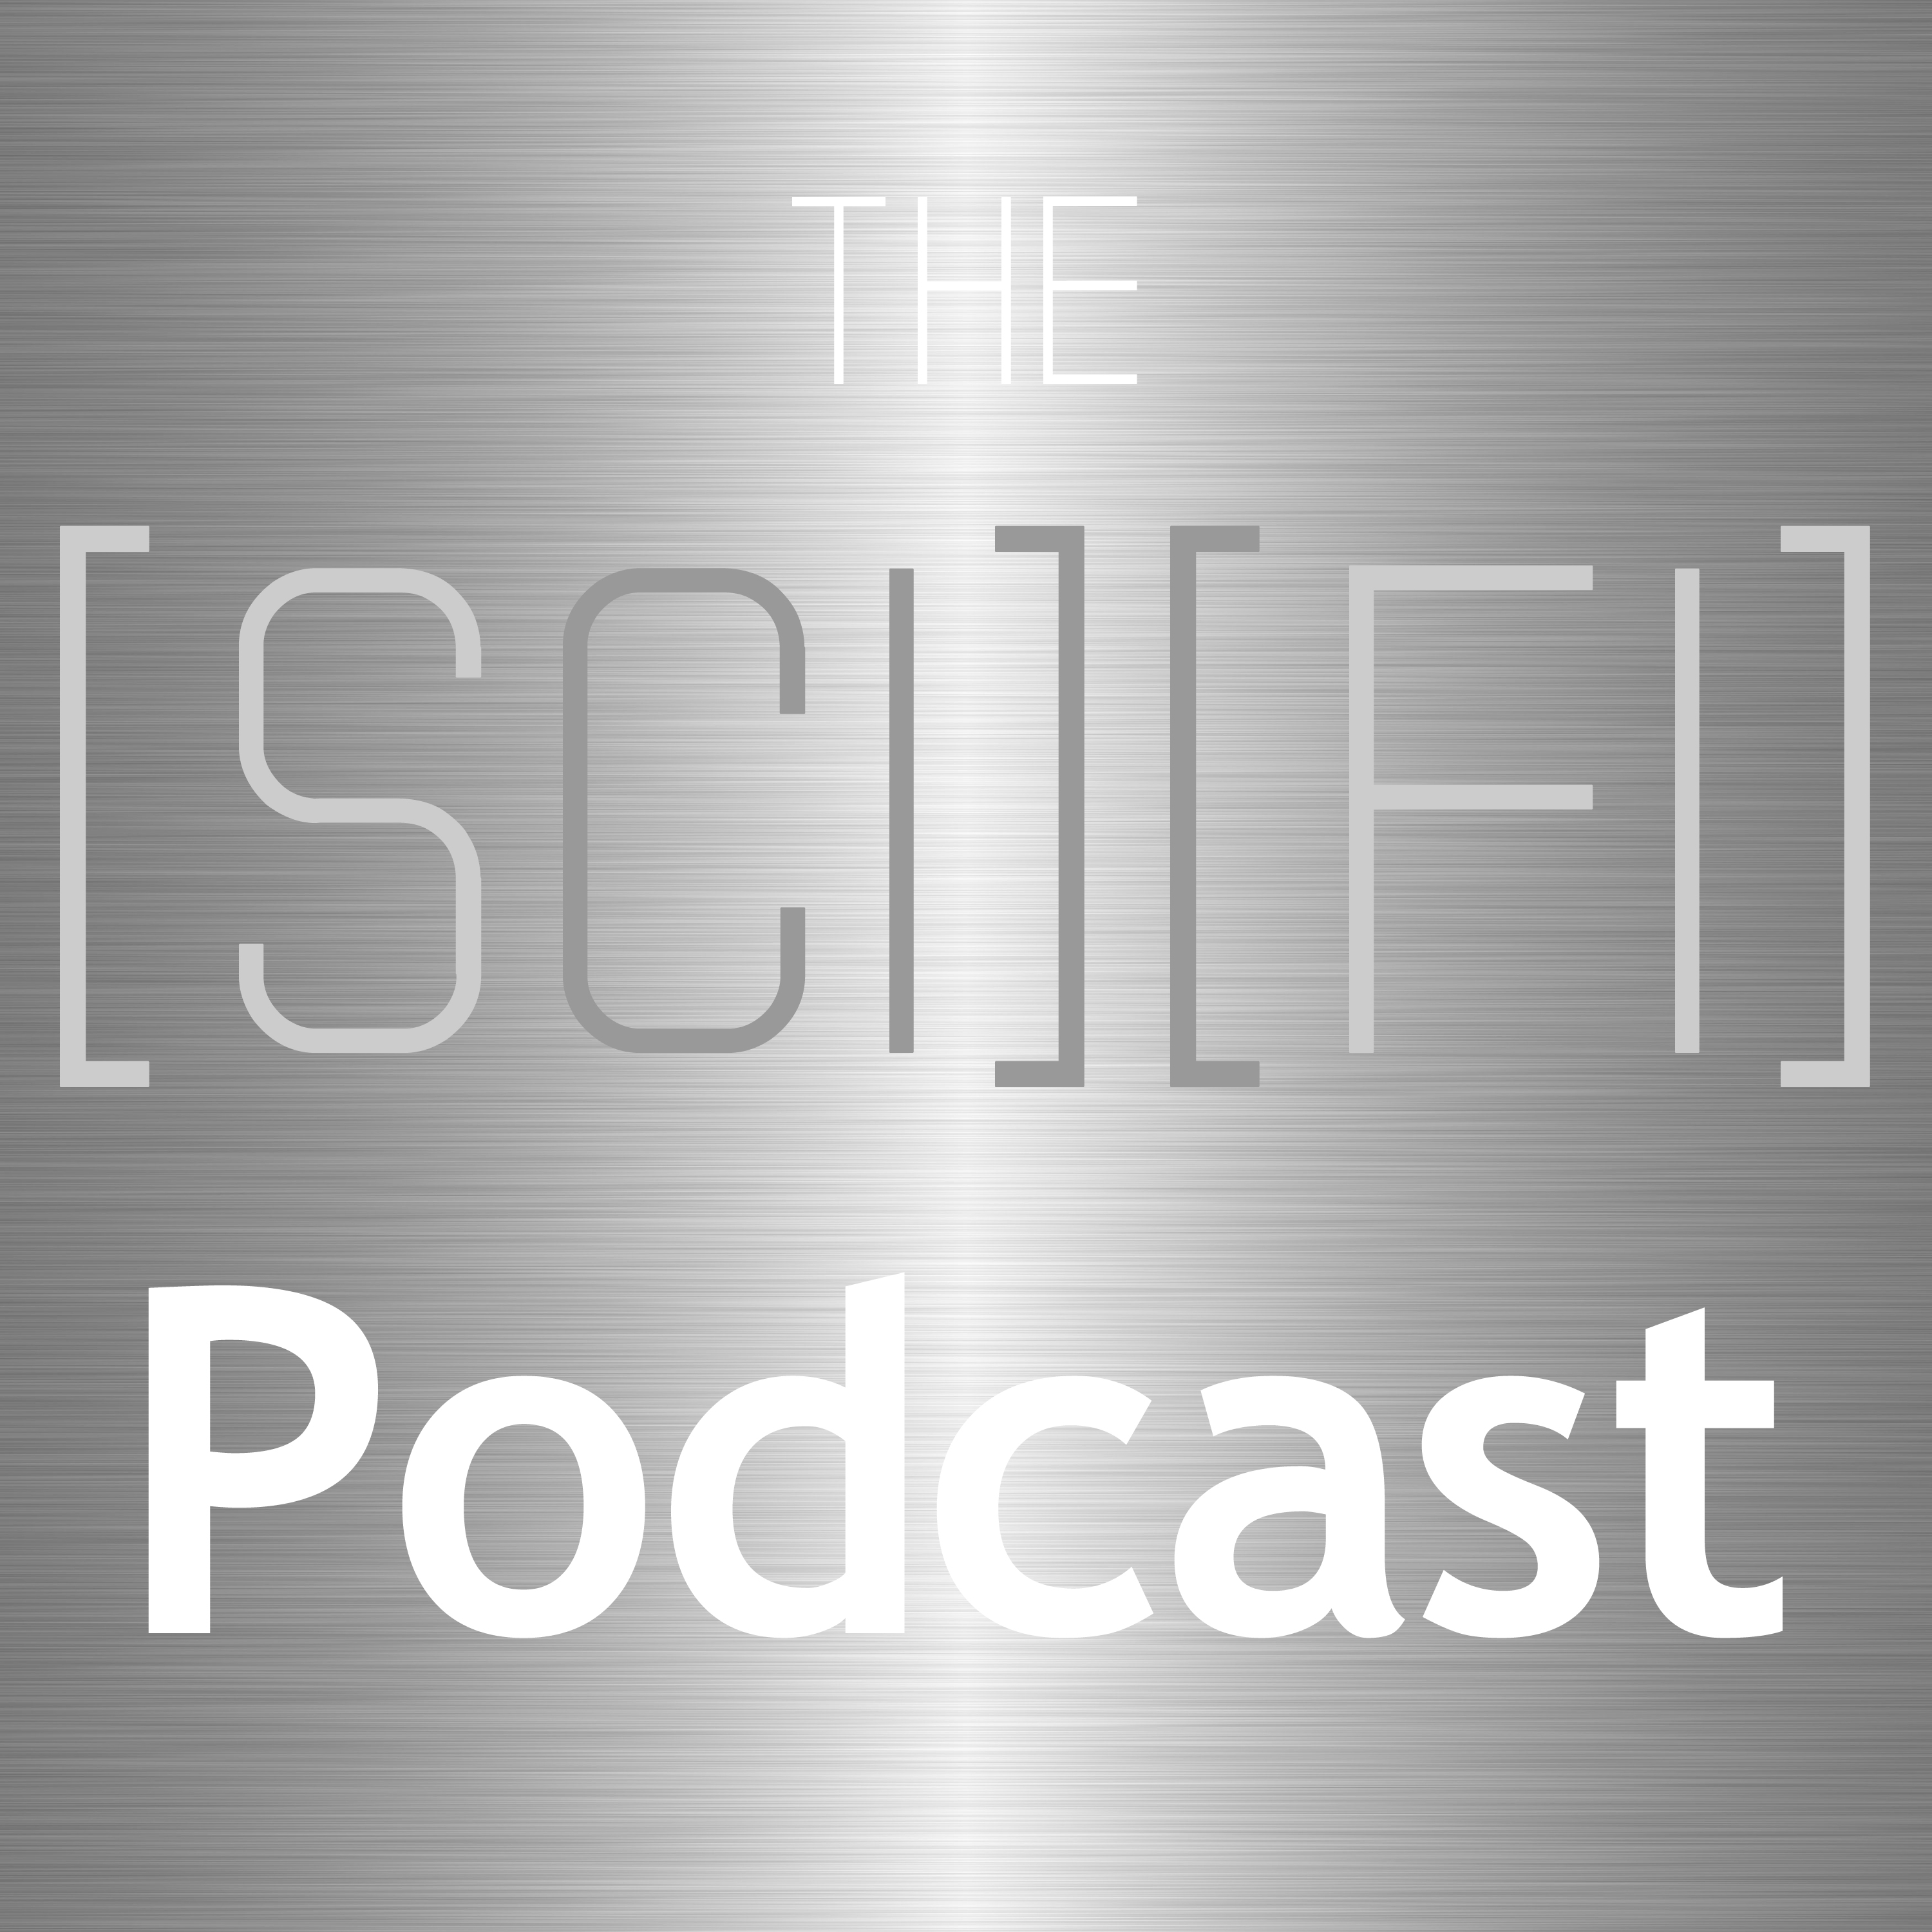 The Sci-Fi Podcast